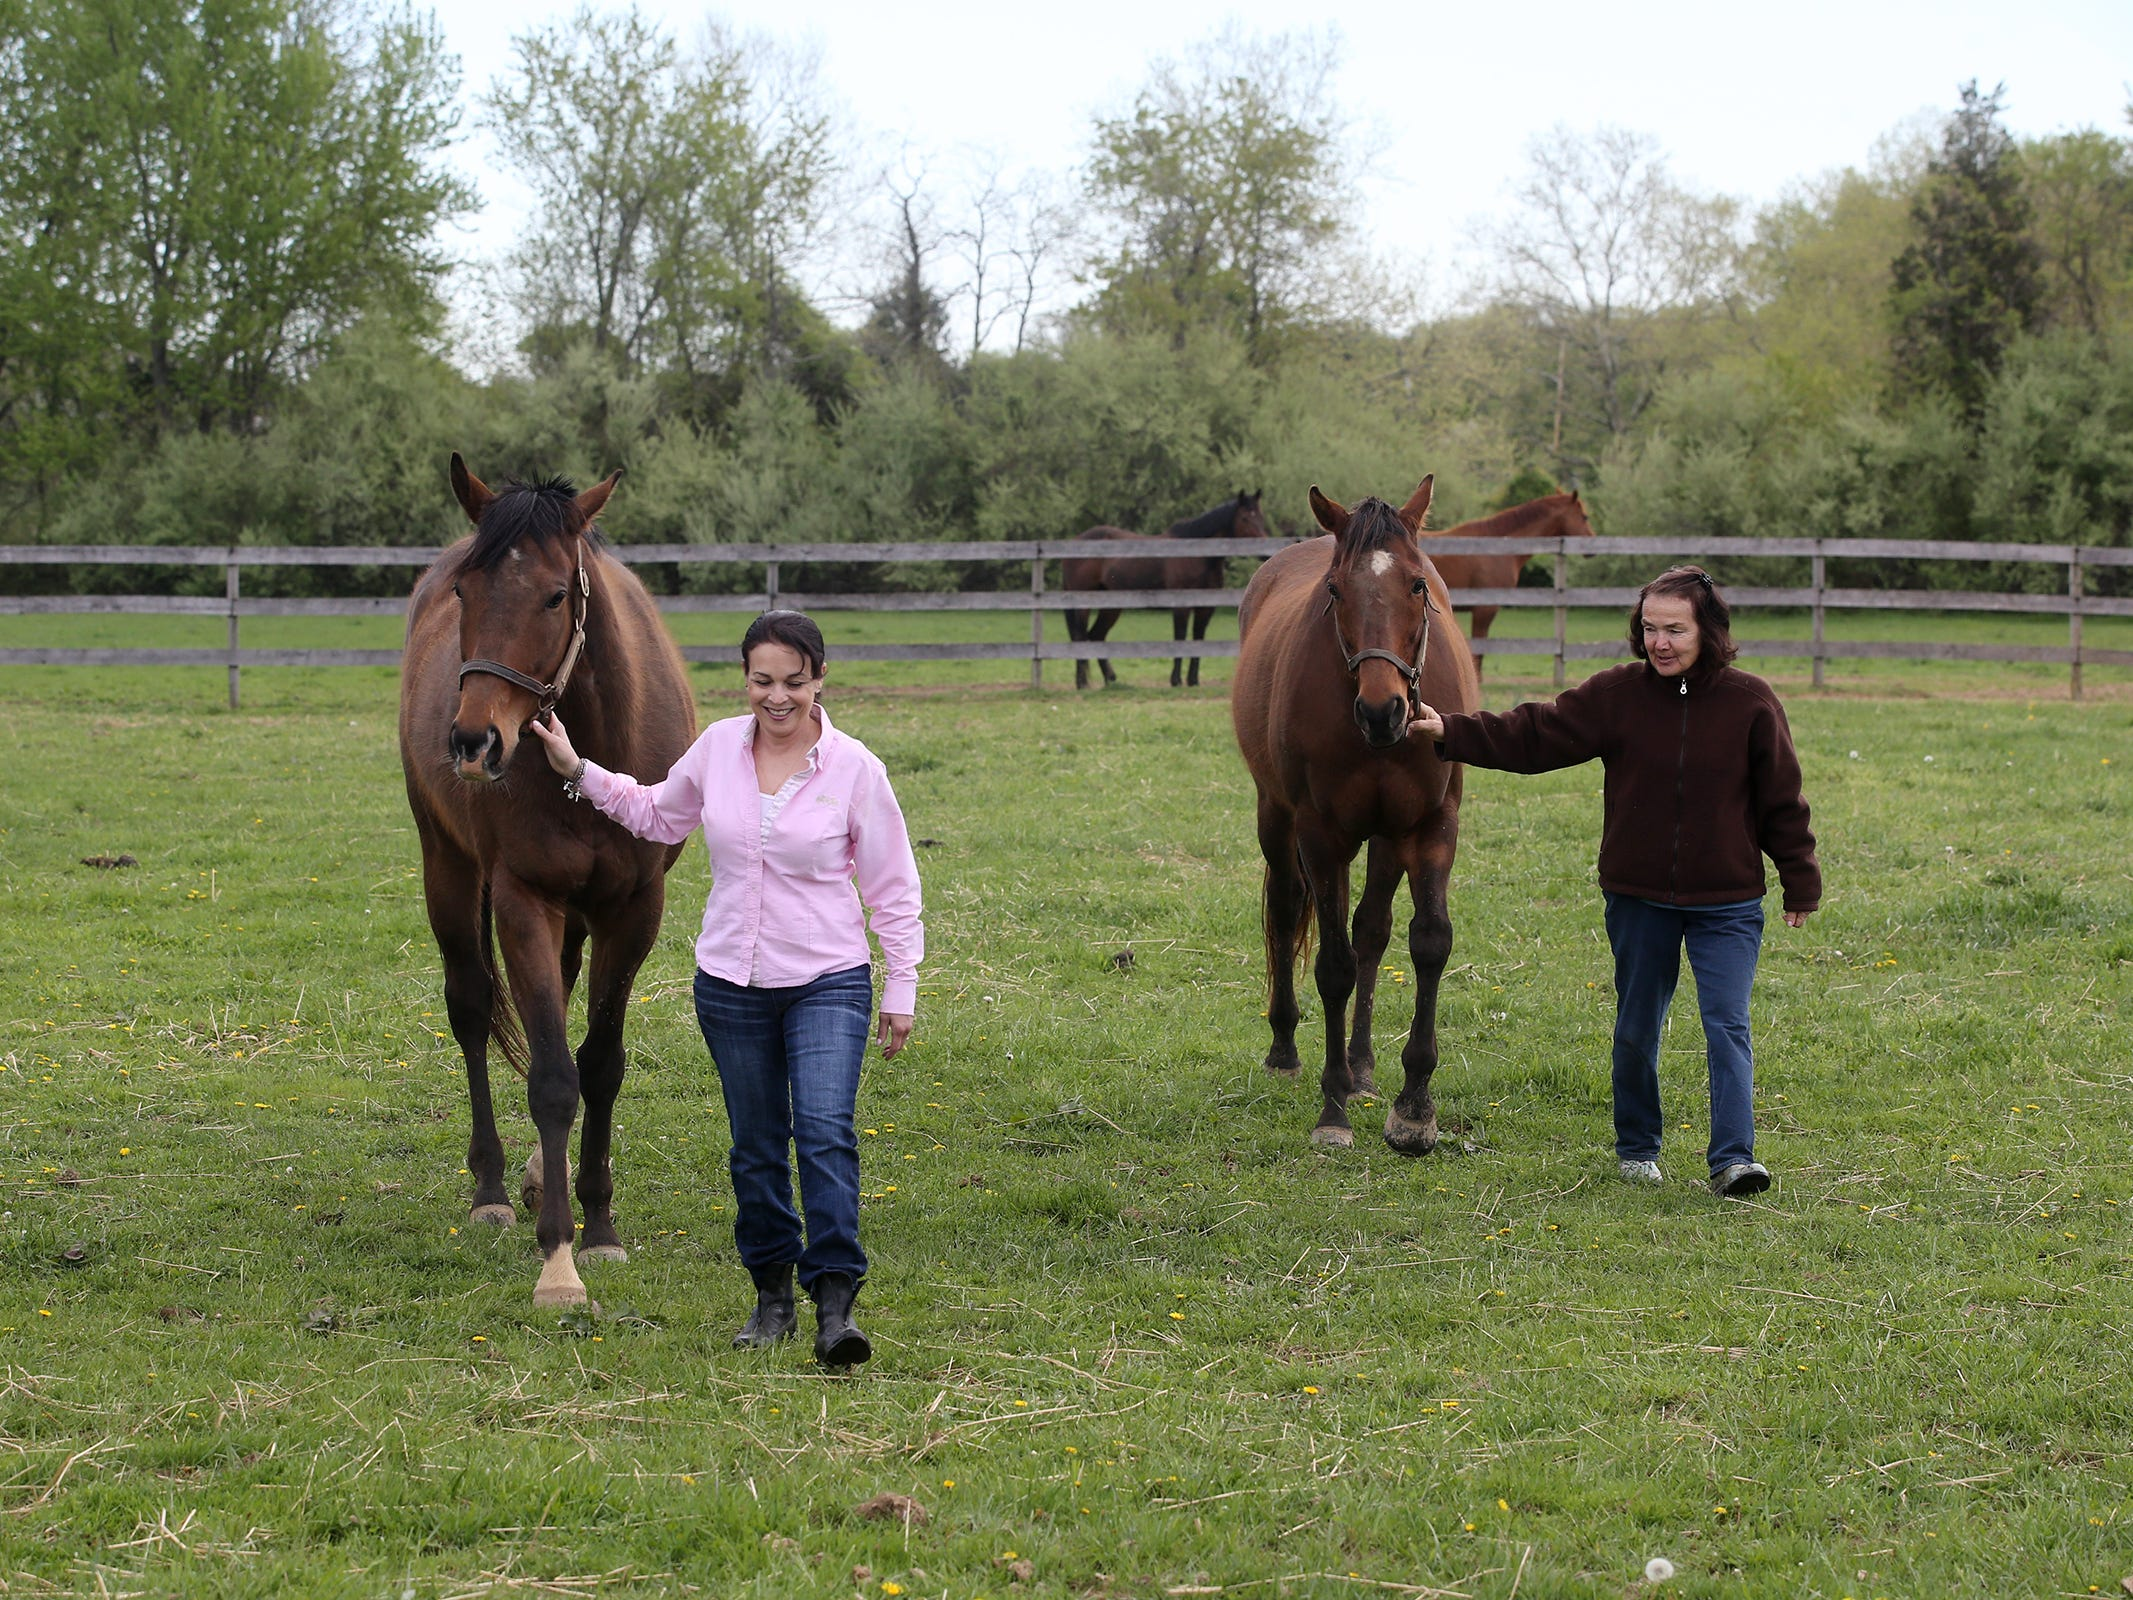 Laurie Condurso-Lane, founder and director of Second Call, a thoroughbred adoption and rescue organization that helps find homes for retired Monmouth Park race horses, and Eileen Munyak, owner of Hill Haven Farm, walk Jazz Man and Livin Large, two retired thoroughbreds rescued by Second Call and are being cared for by Eileen Munyak, at Hill Haven Farm, in Millstone Twp., NJ Thursday, April 25, 2019.